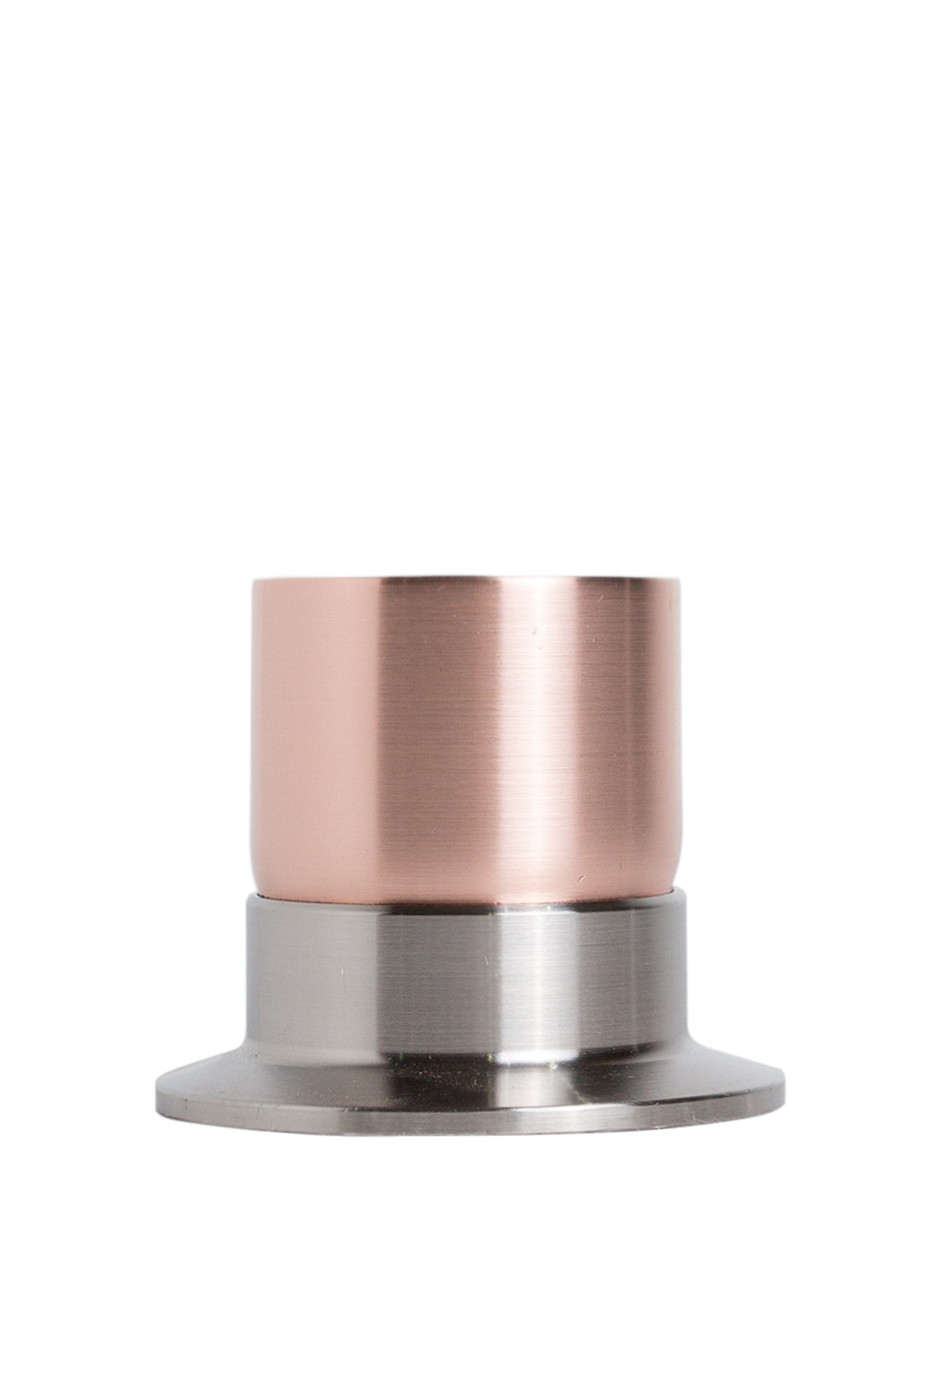 Copper ferrule TRI-CLAMP 1.5""